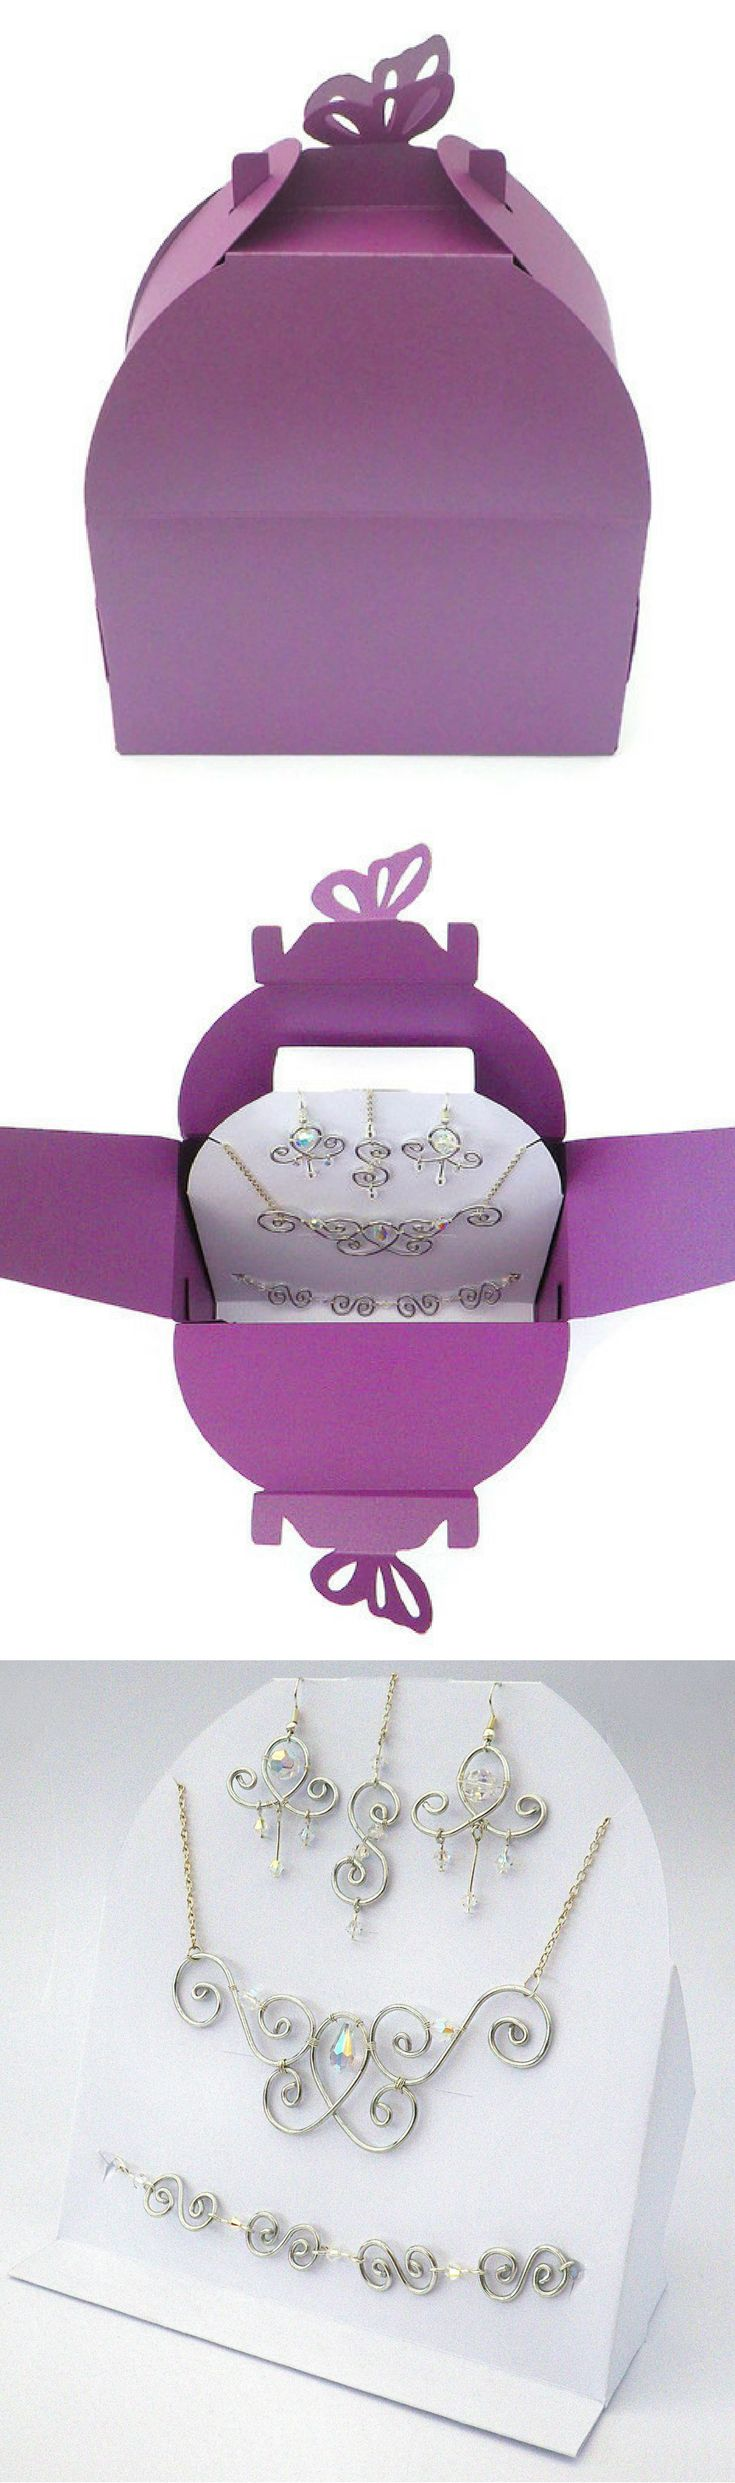 101 best Boxes for weddings and baby showers images on Pinterest ...